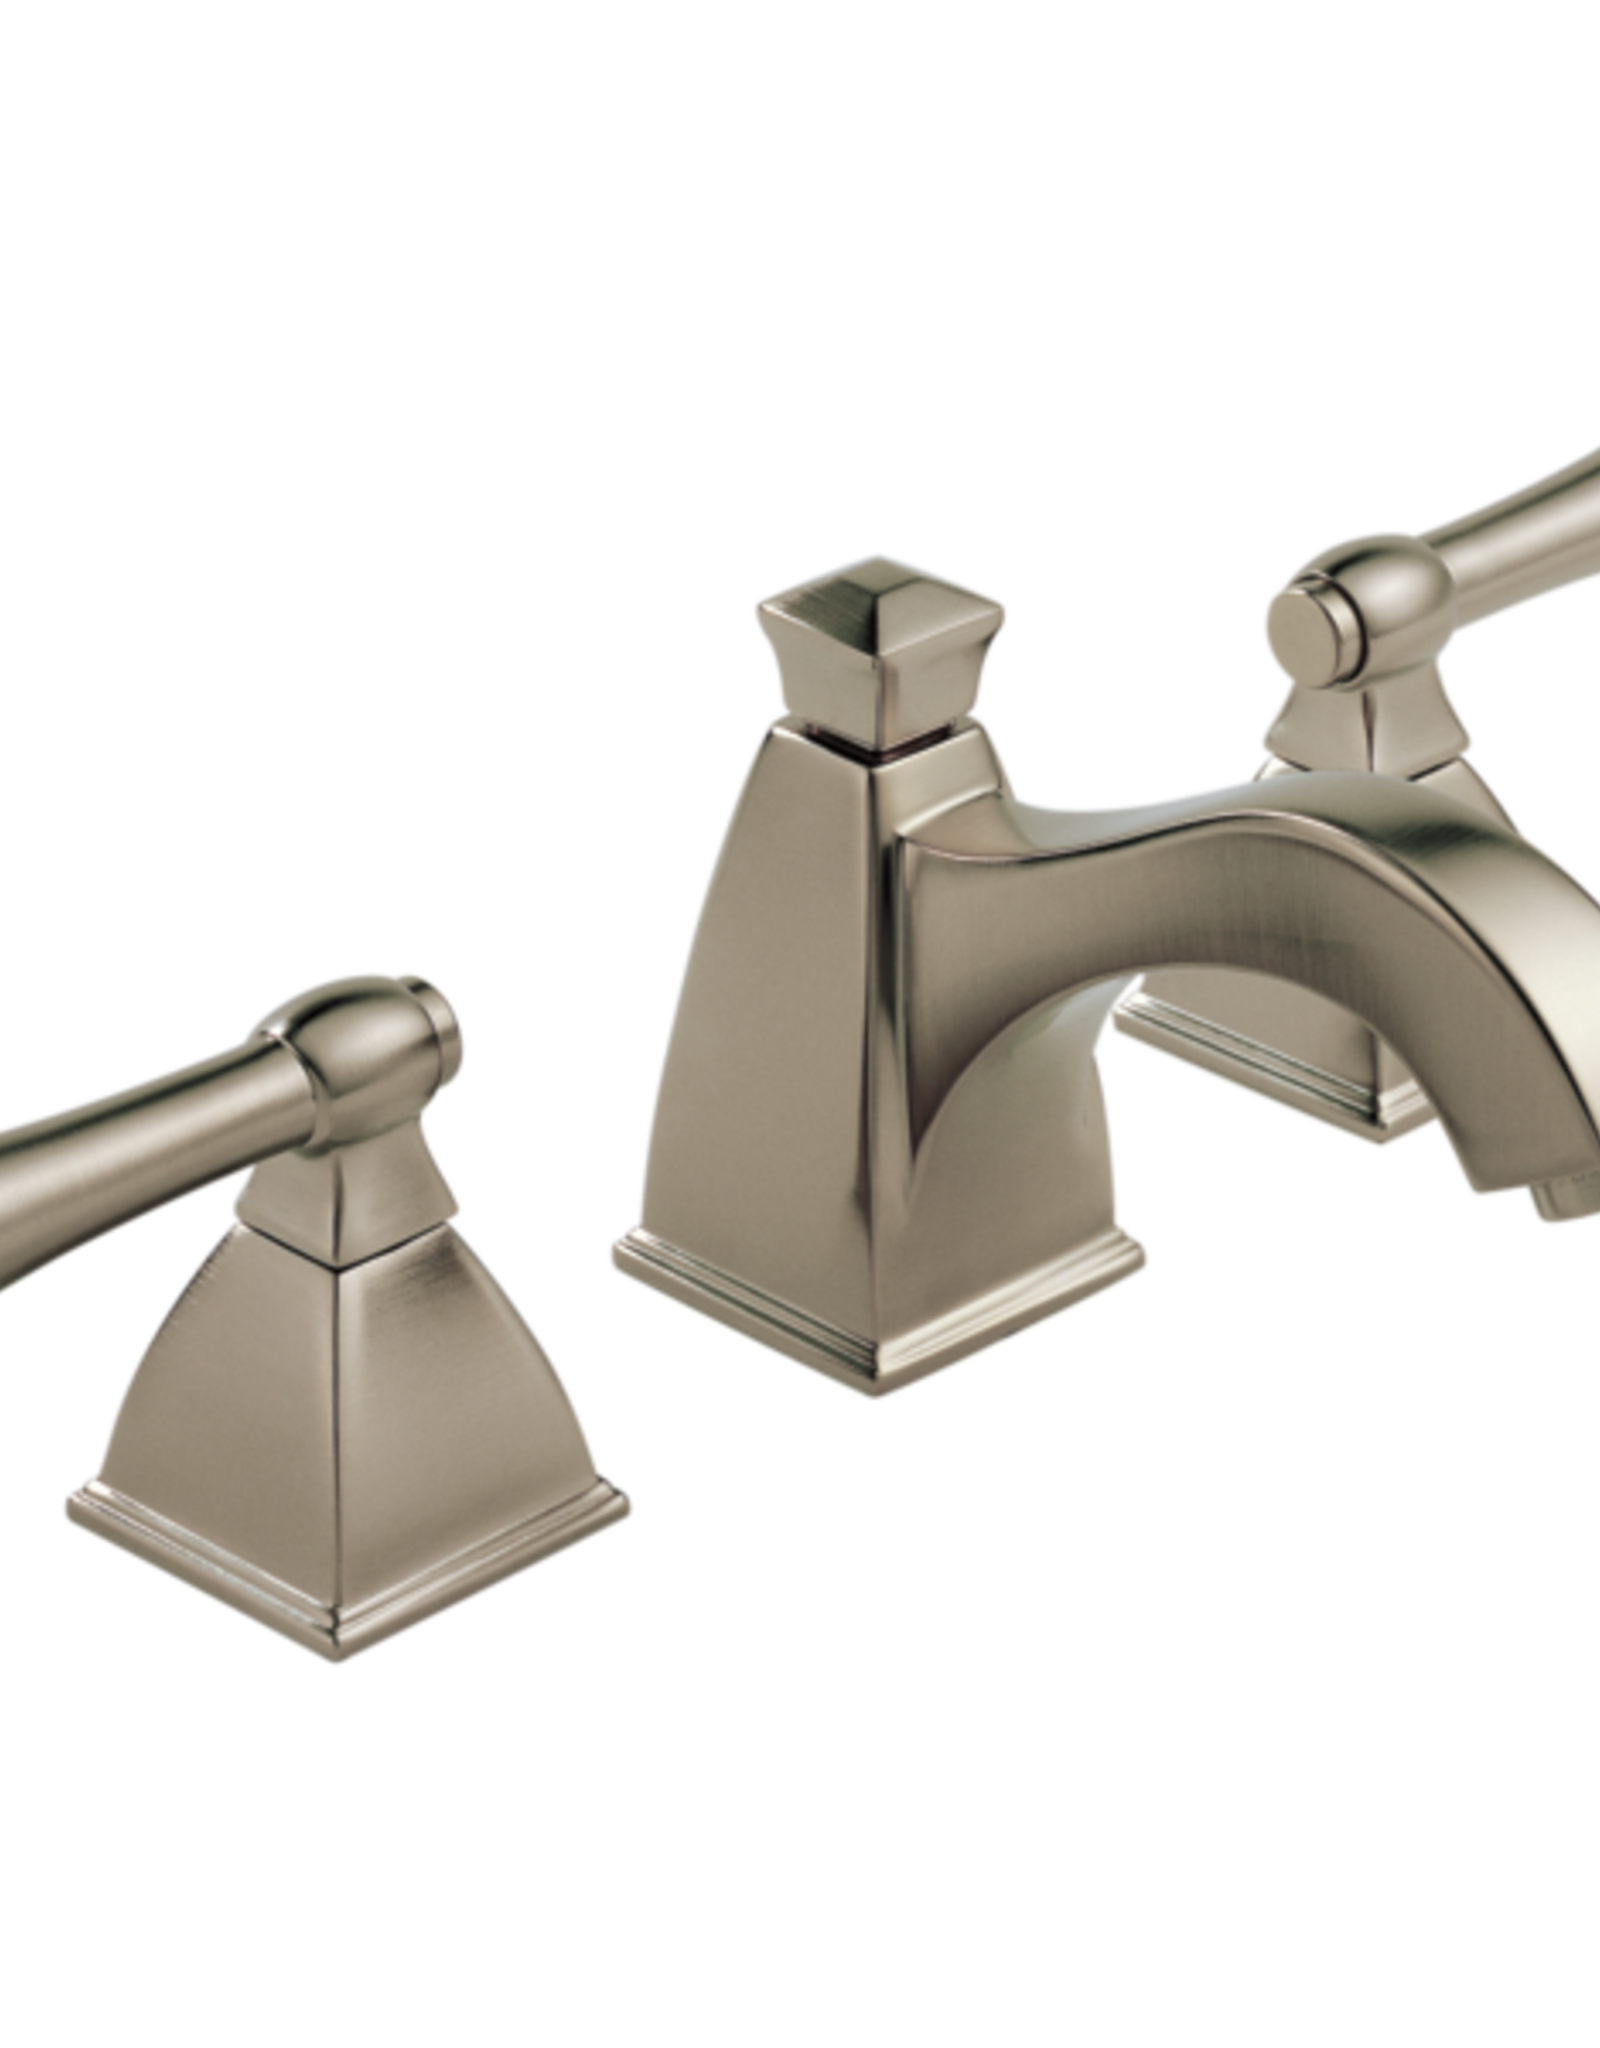 Brizo BRIZO VESI - BRUSHED NICKEL LAVATORY FAUCET WITH CURVE SPOUT